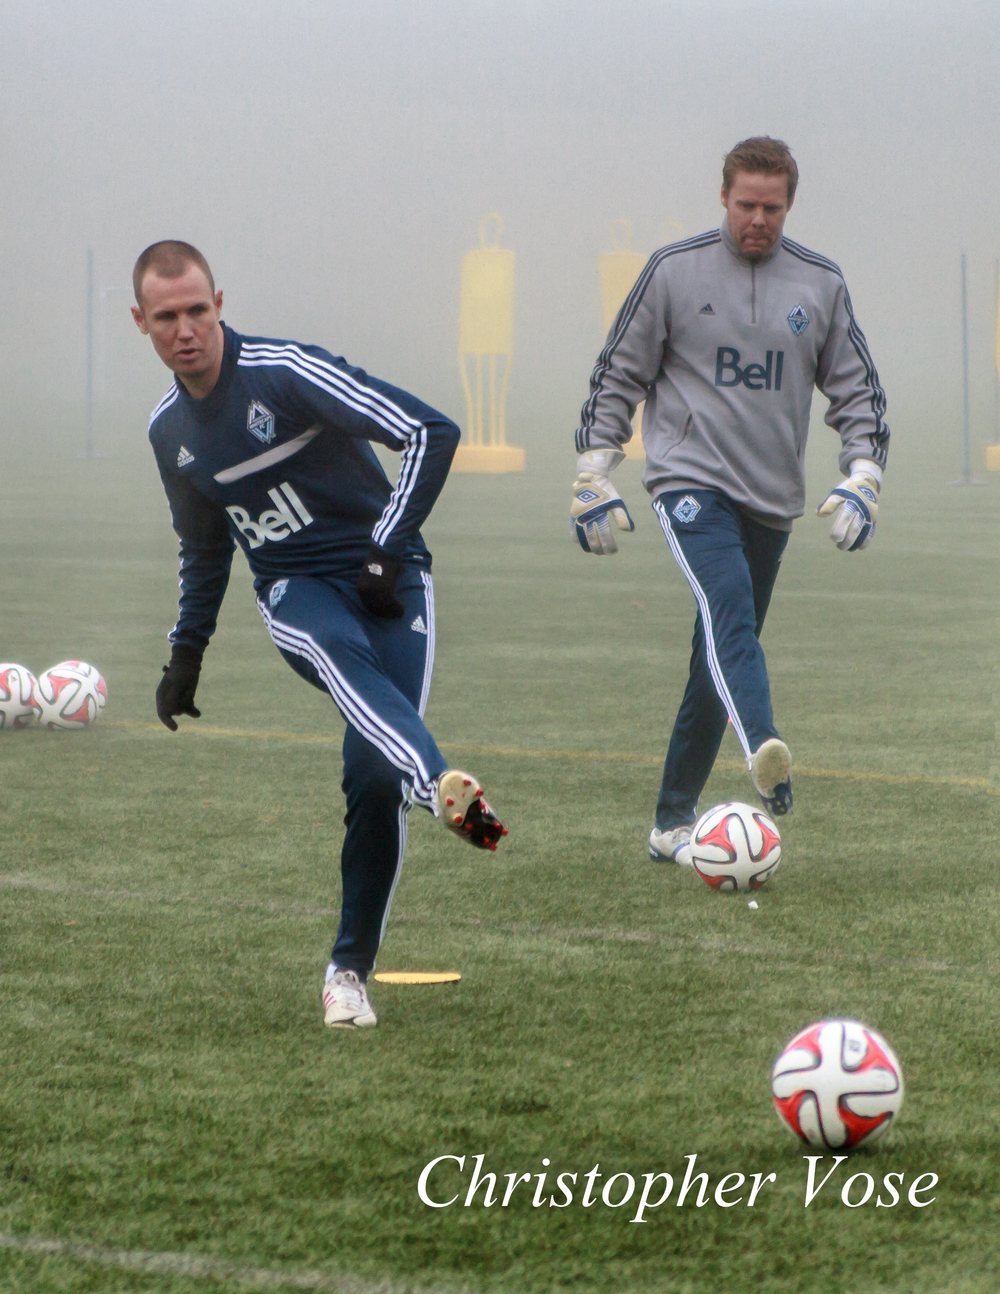 2014-01-27 Kenny Miller and Marius Røvde.jpg